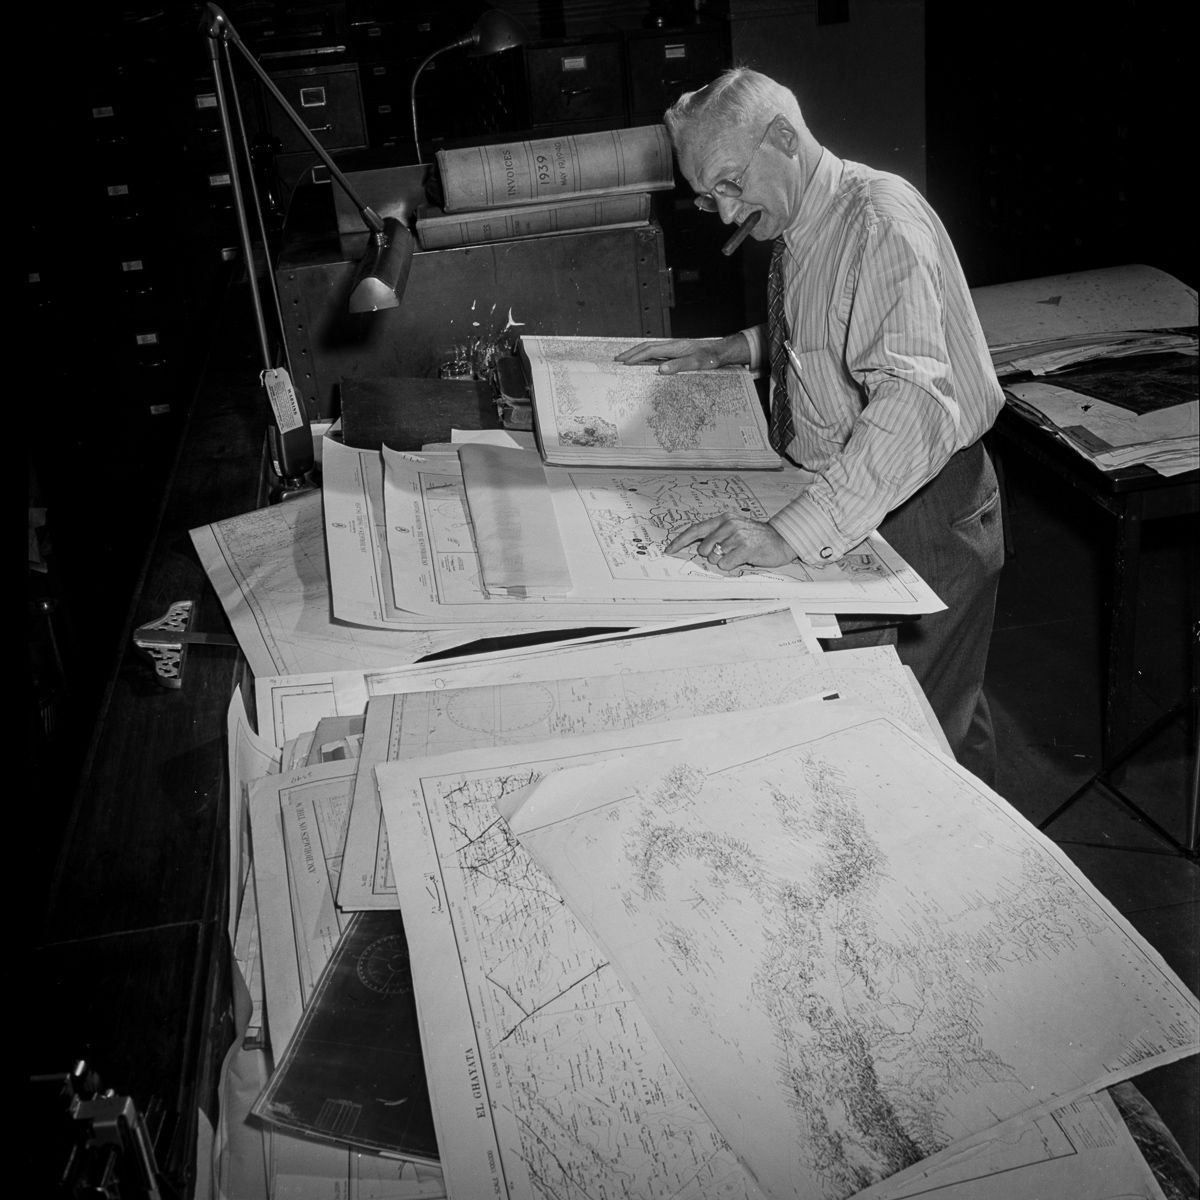 In the art department, the cartographer consults charts to prepare a map of the war in Europe. This employee was also here for the First World War.